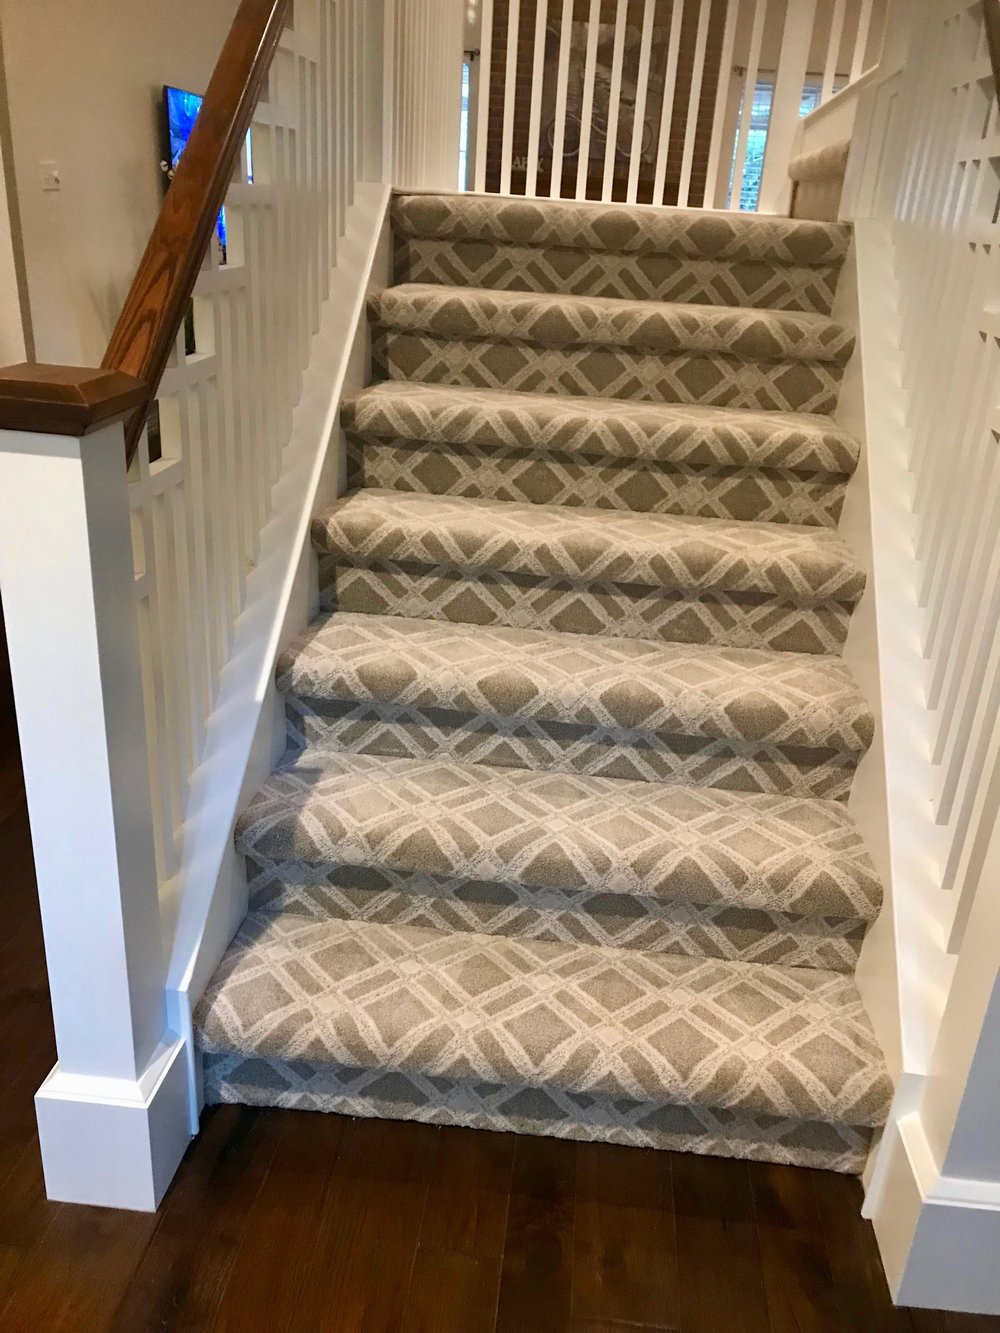 AFTER - Anderson Tuftex patterned carpet to complete the look.